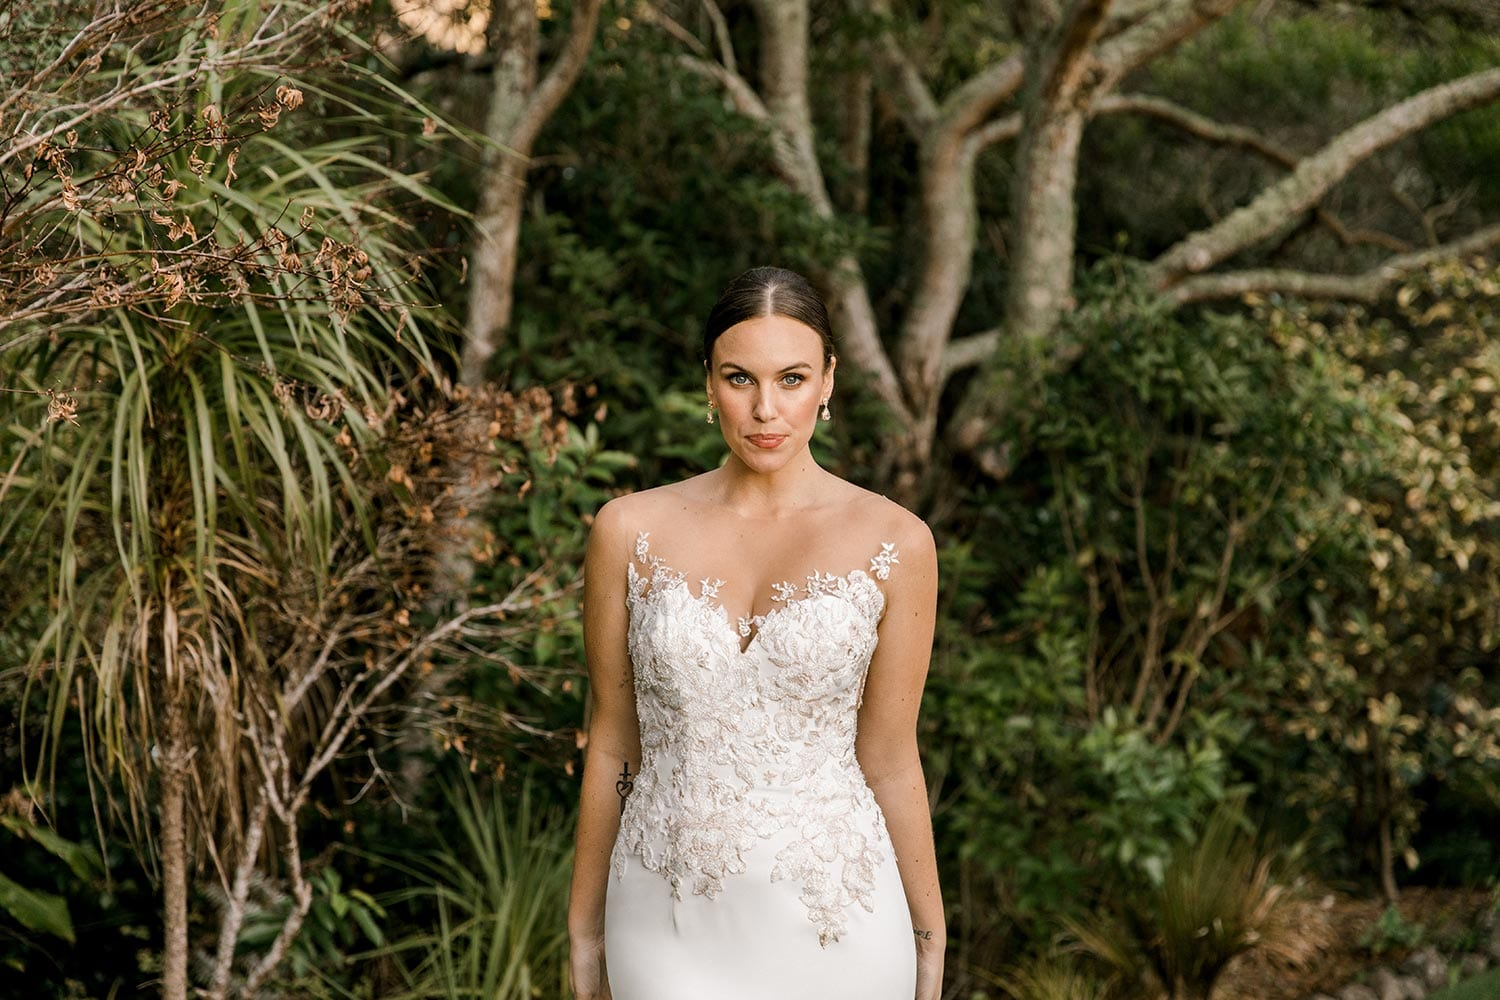 Samantha Wedding Dress from Vinka Design. This beautiful wedding dress has a nude sheer illusion strapless neckline made from fine Italian tulle. Low sheer back & structured bodice, & soft crepe train. Front detail of bodice. Photographed in Landscaped garden.